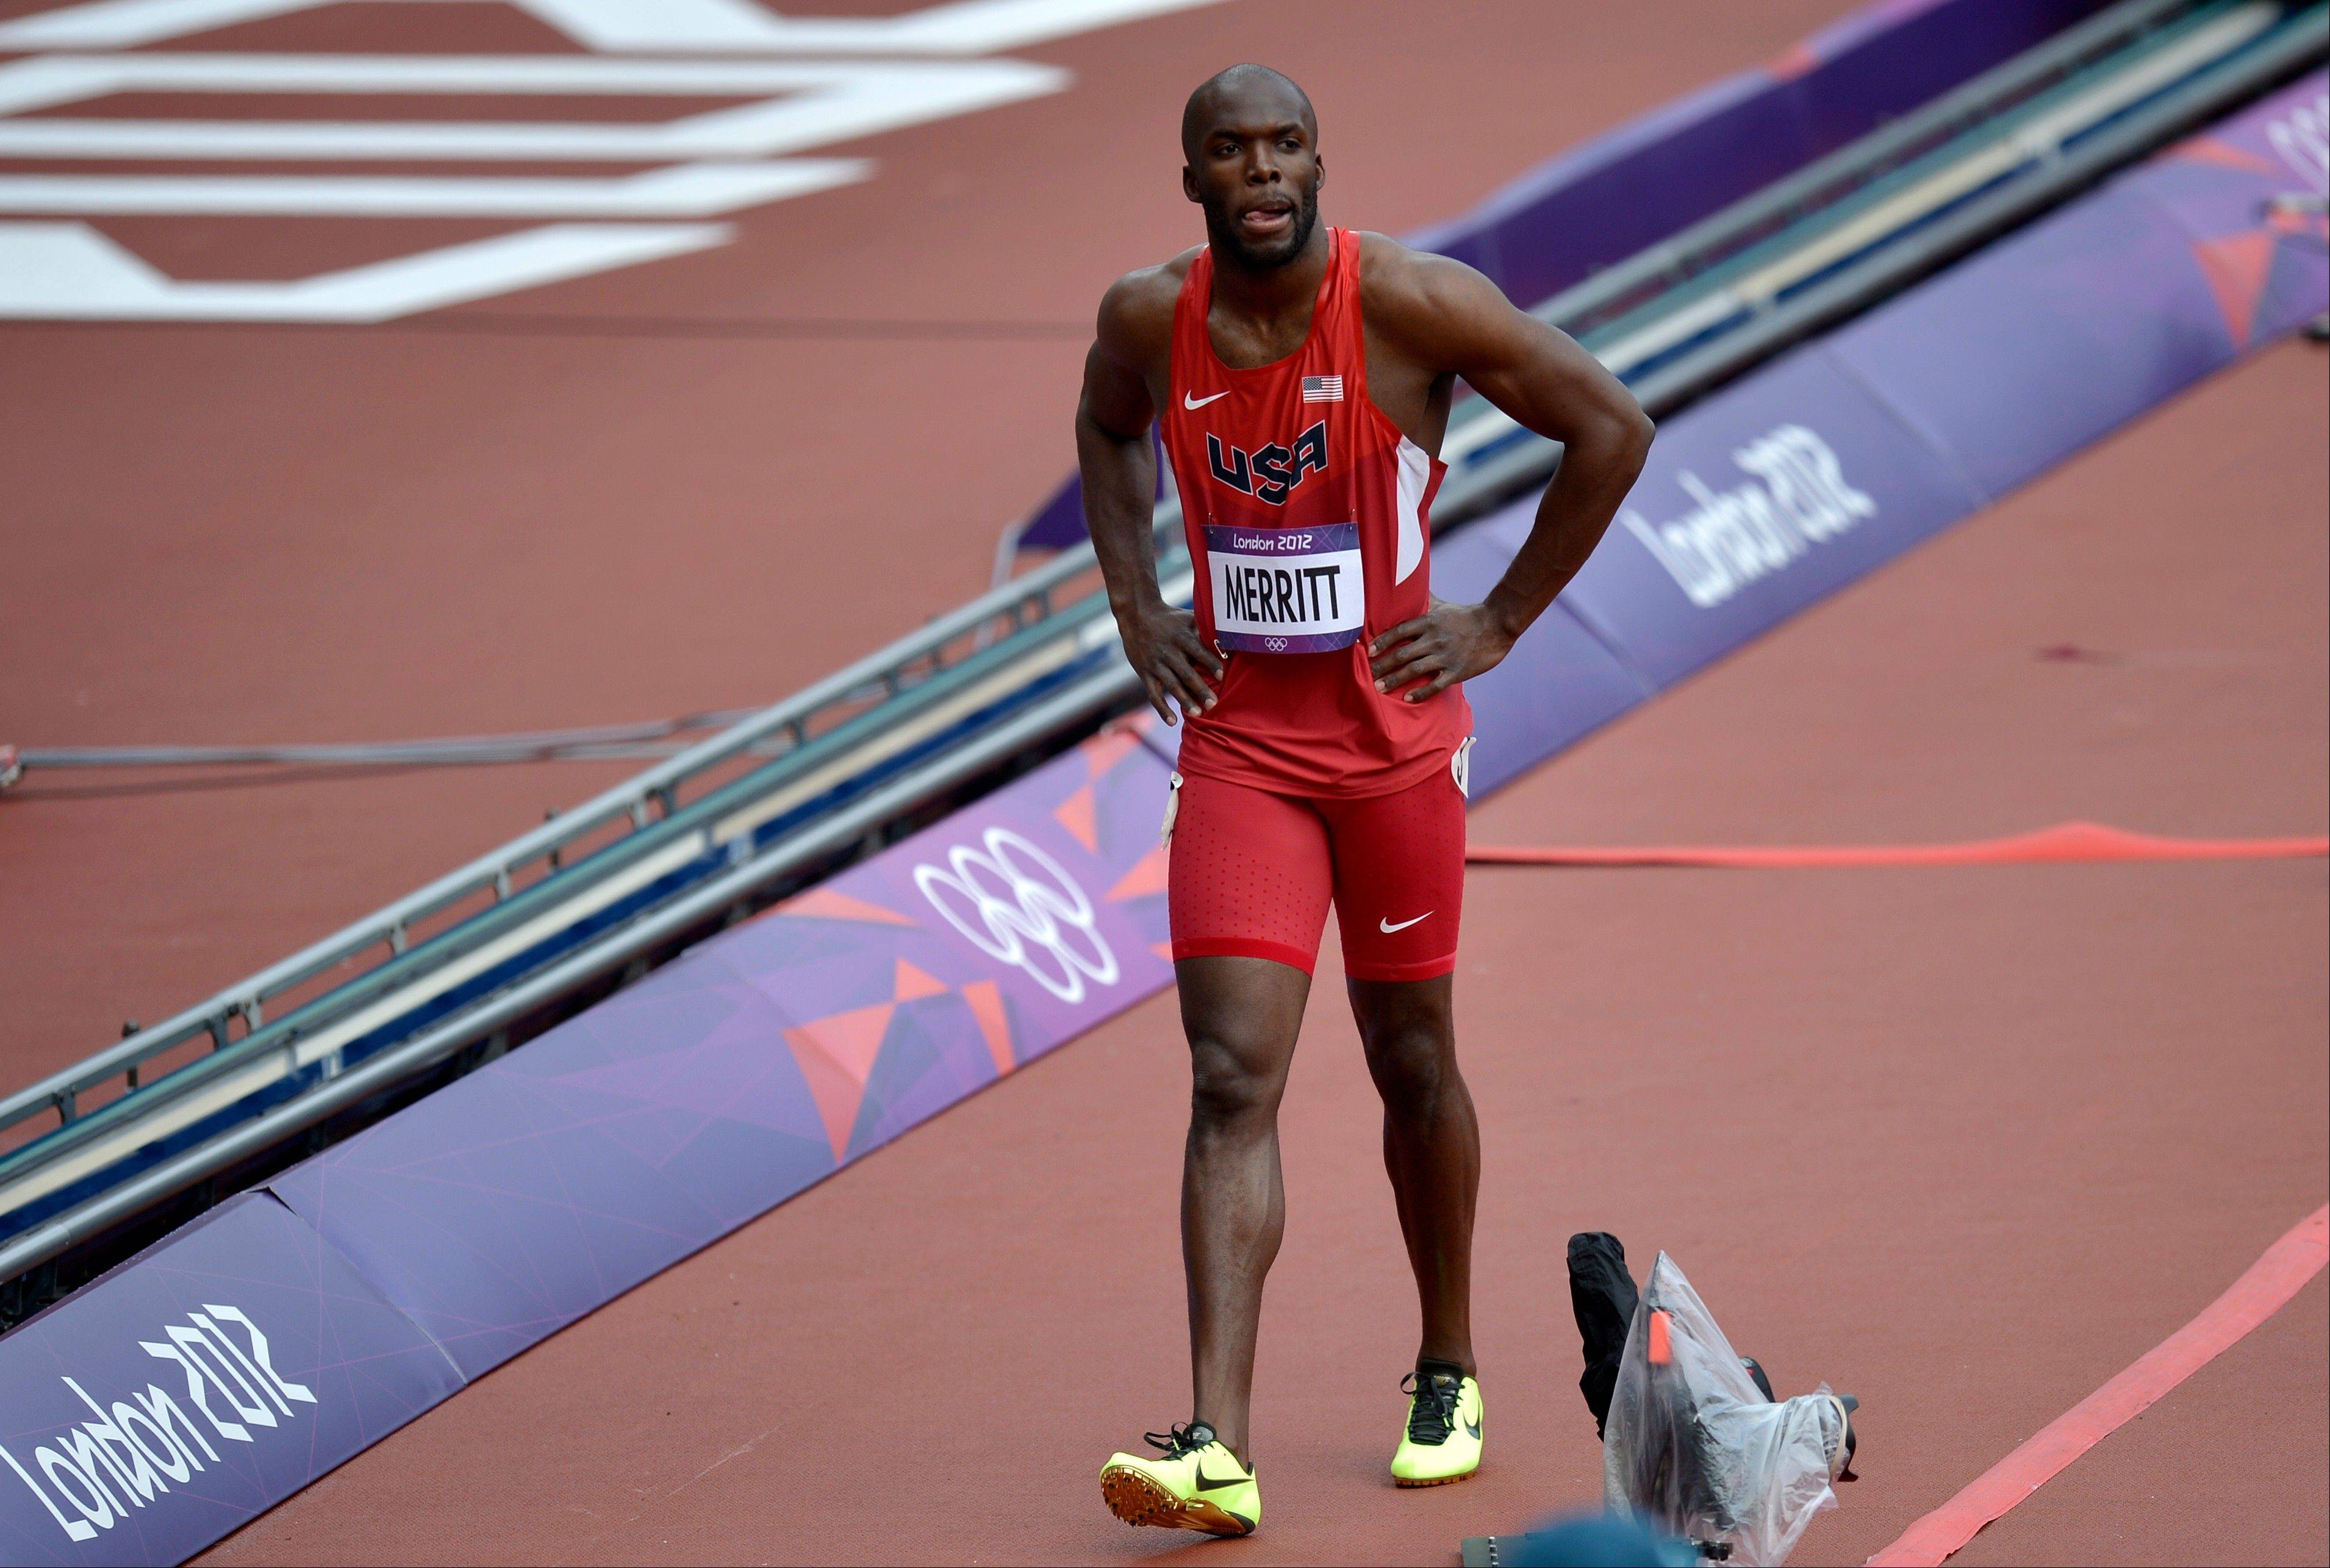 United States' LaShawn Merritt walks with an injured hamstring following his heat of the men's 400 meters during the athletics in the Olympic Stadium at the 2012 Summer Olympics, London, Saturday, Aug. 4, 2012.